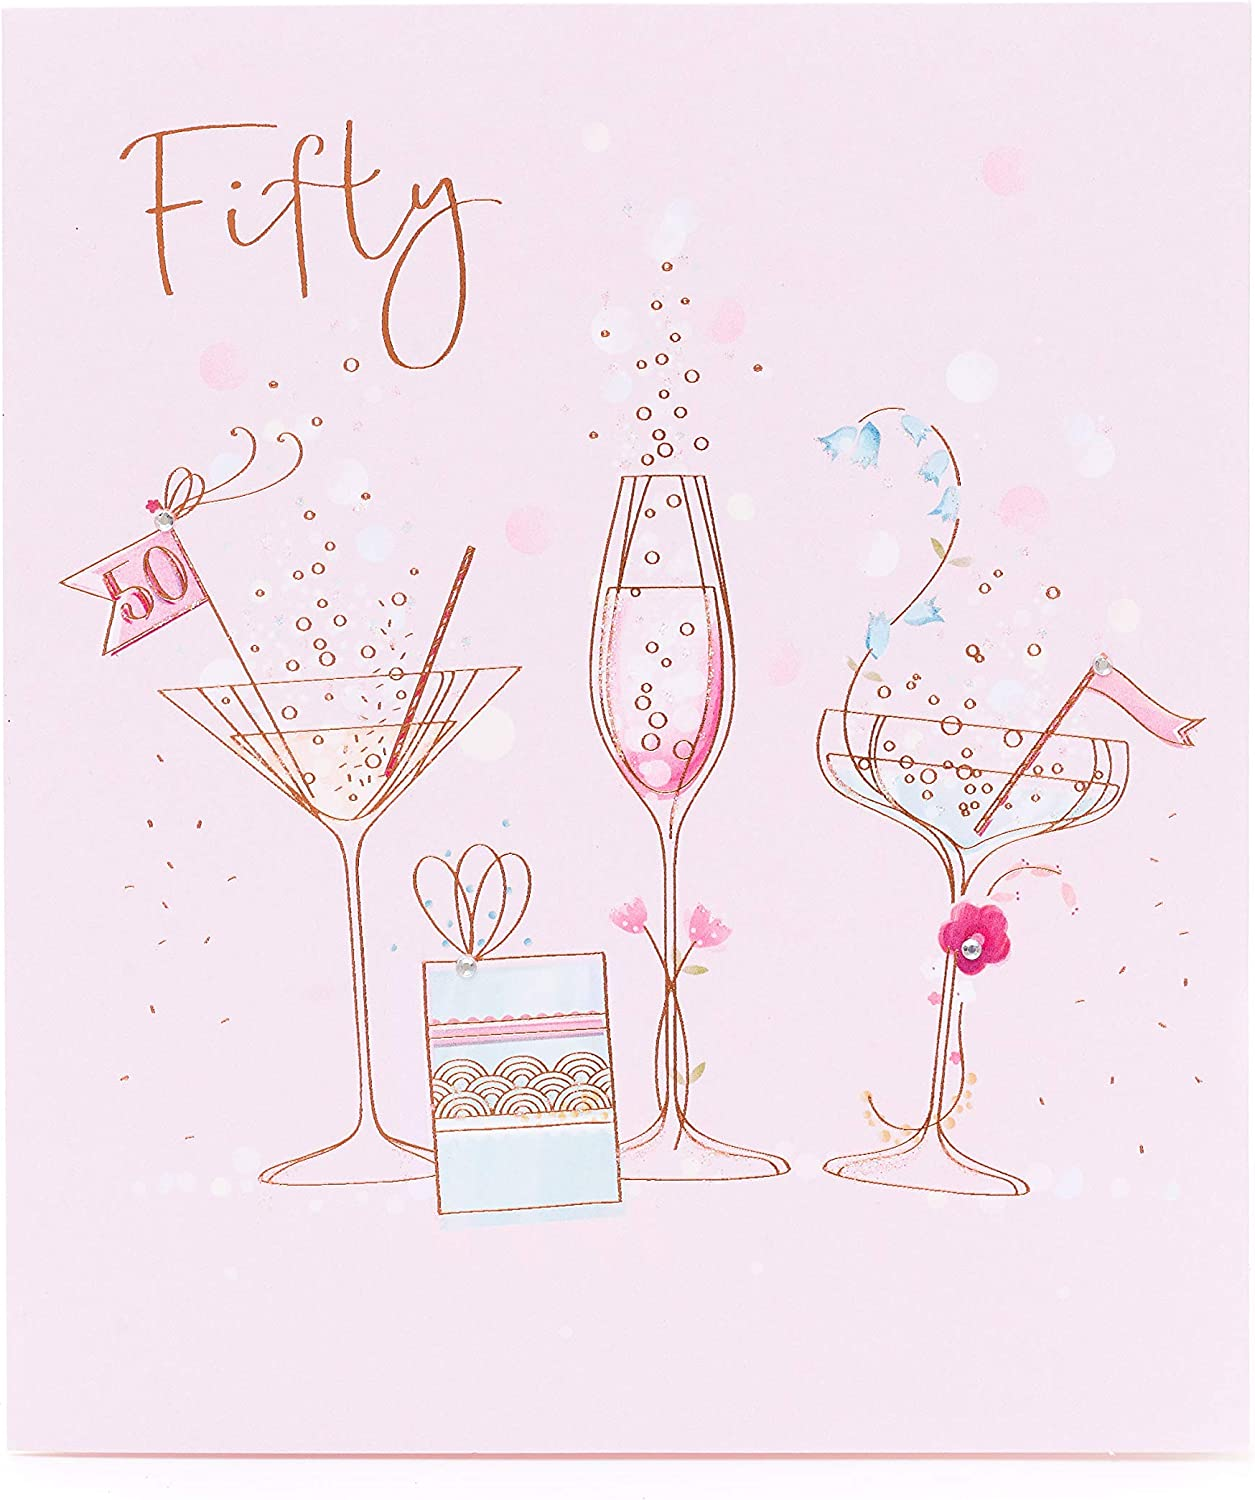 50th Birthday Card Birthday Card For Her Friend Birthday Card Fun Cocktail And Champagne Design Amazon Co Uk Office Products